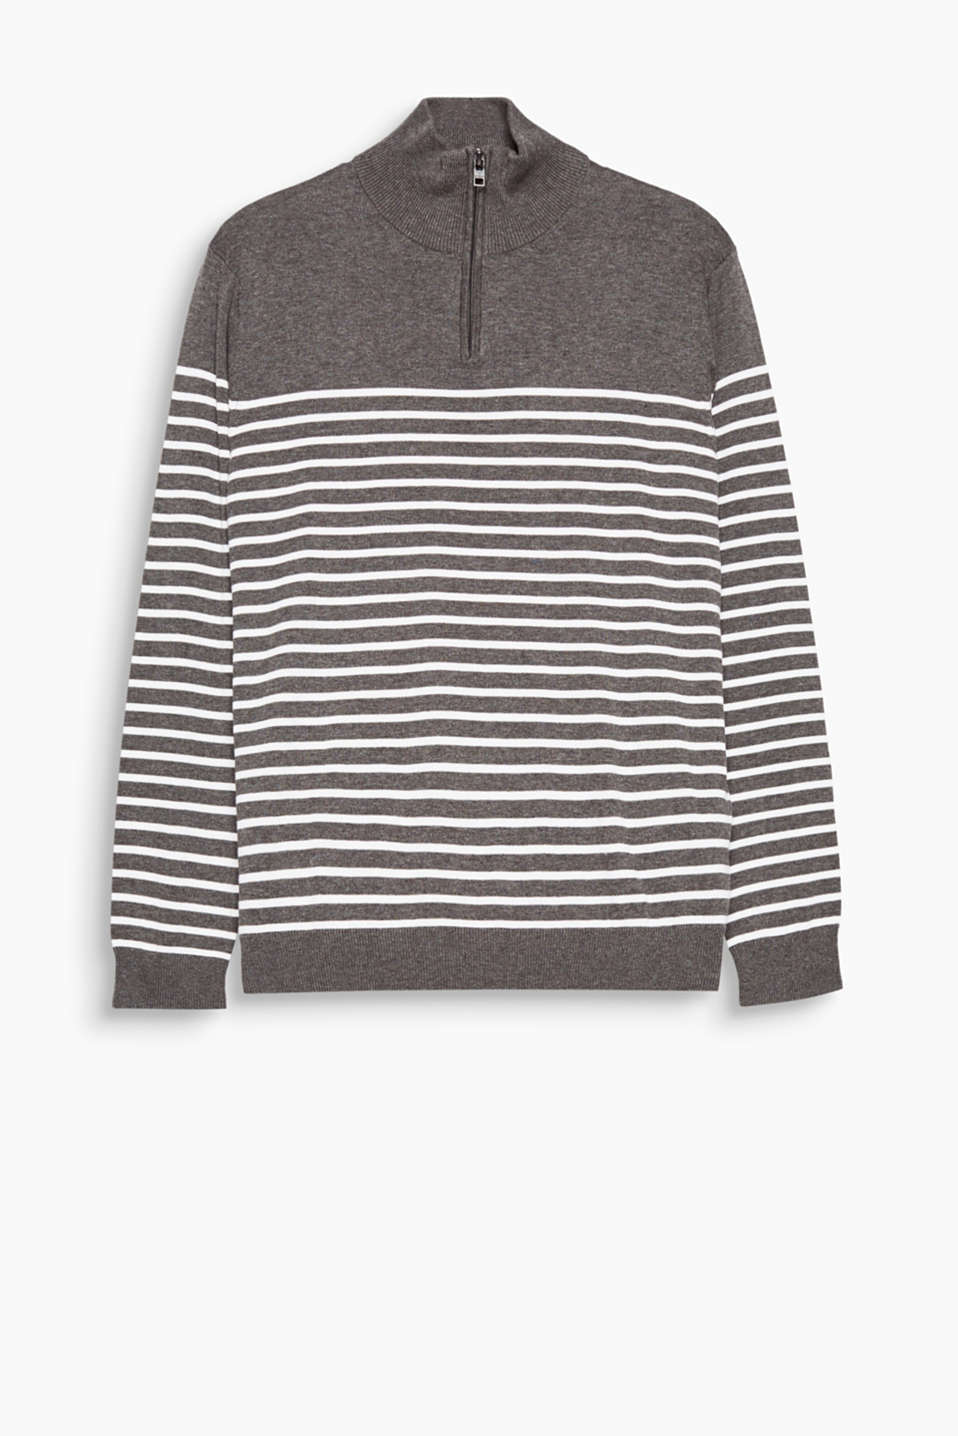 Striped jumper in 100% cotton with a high zip neck and ribbed edge